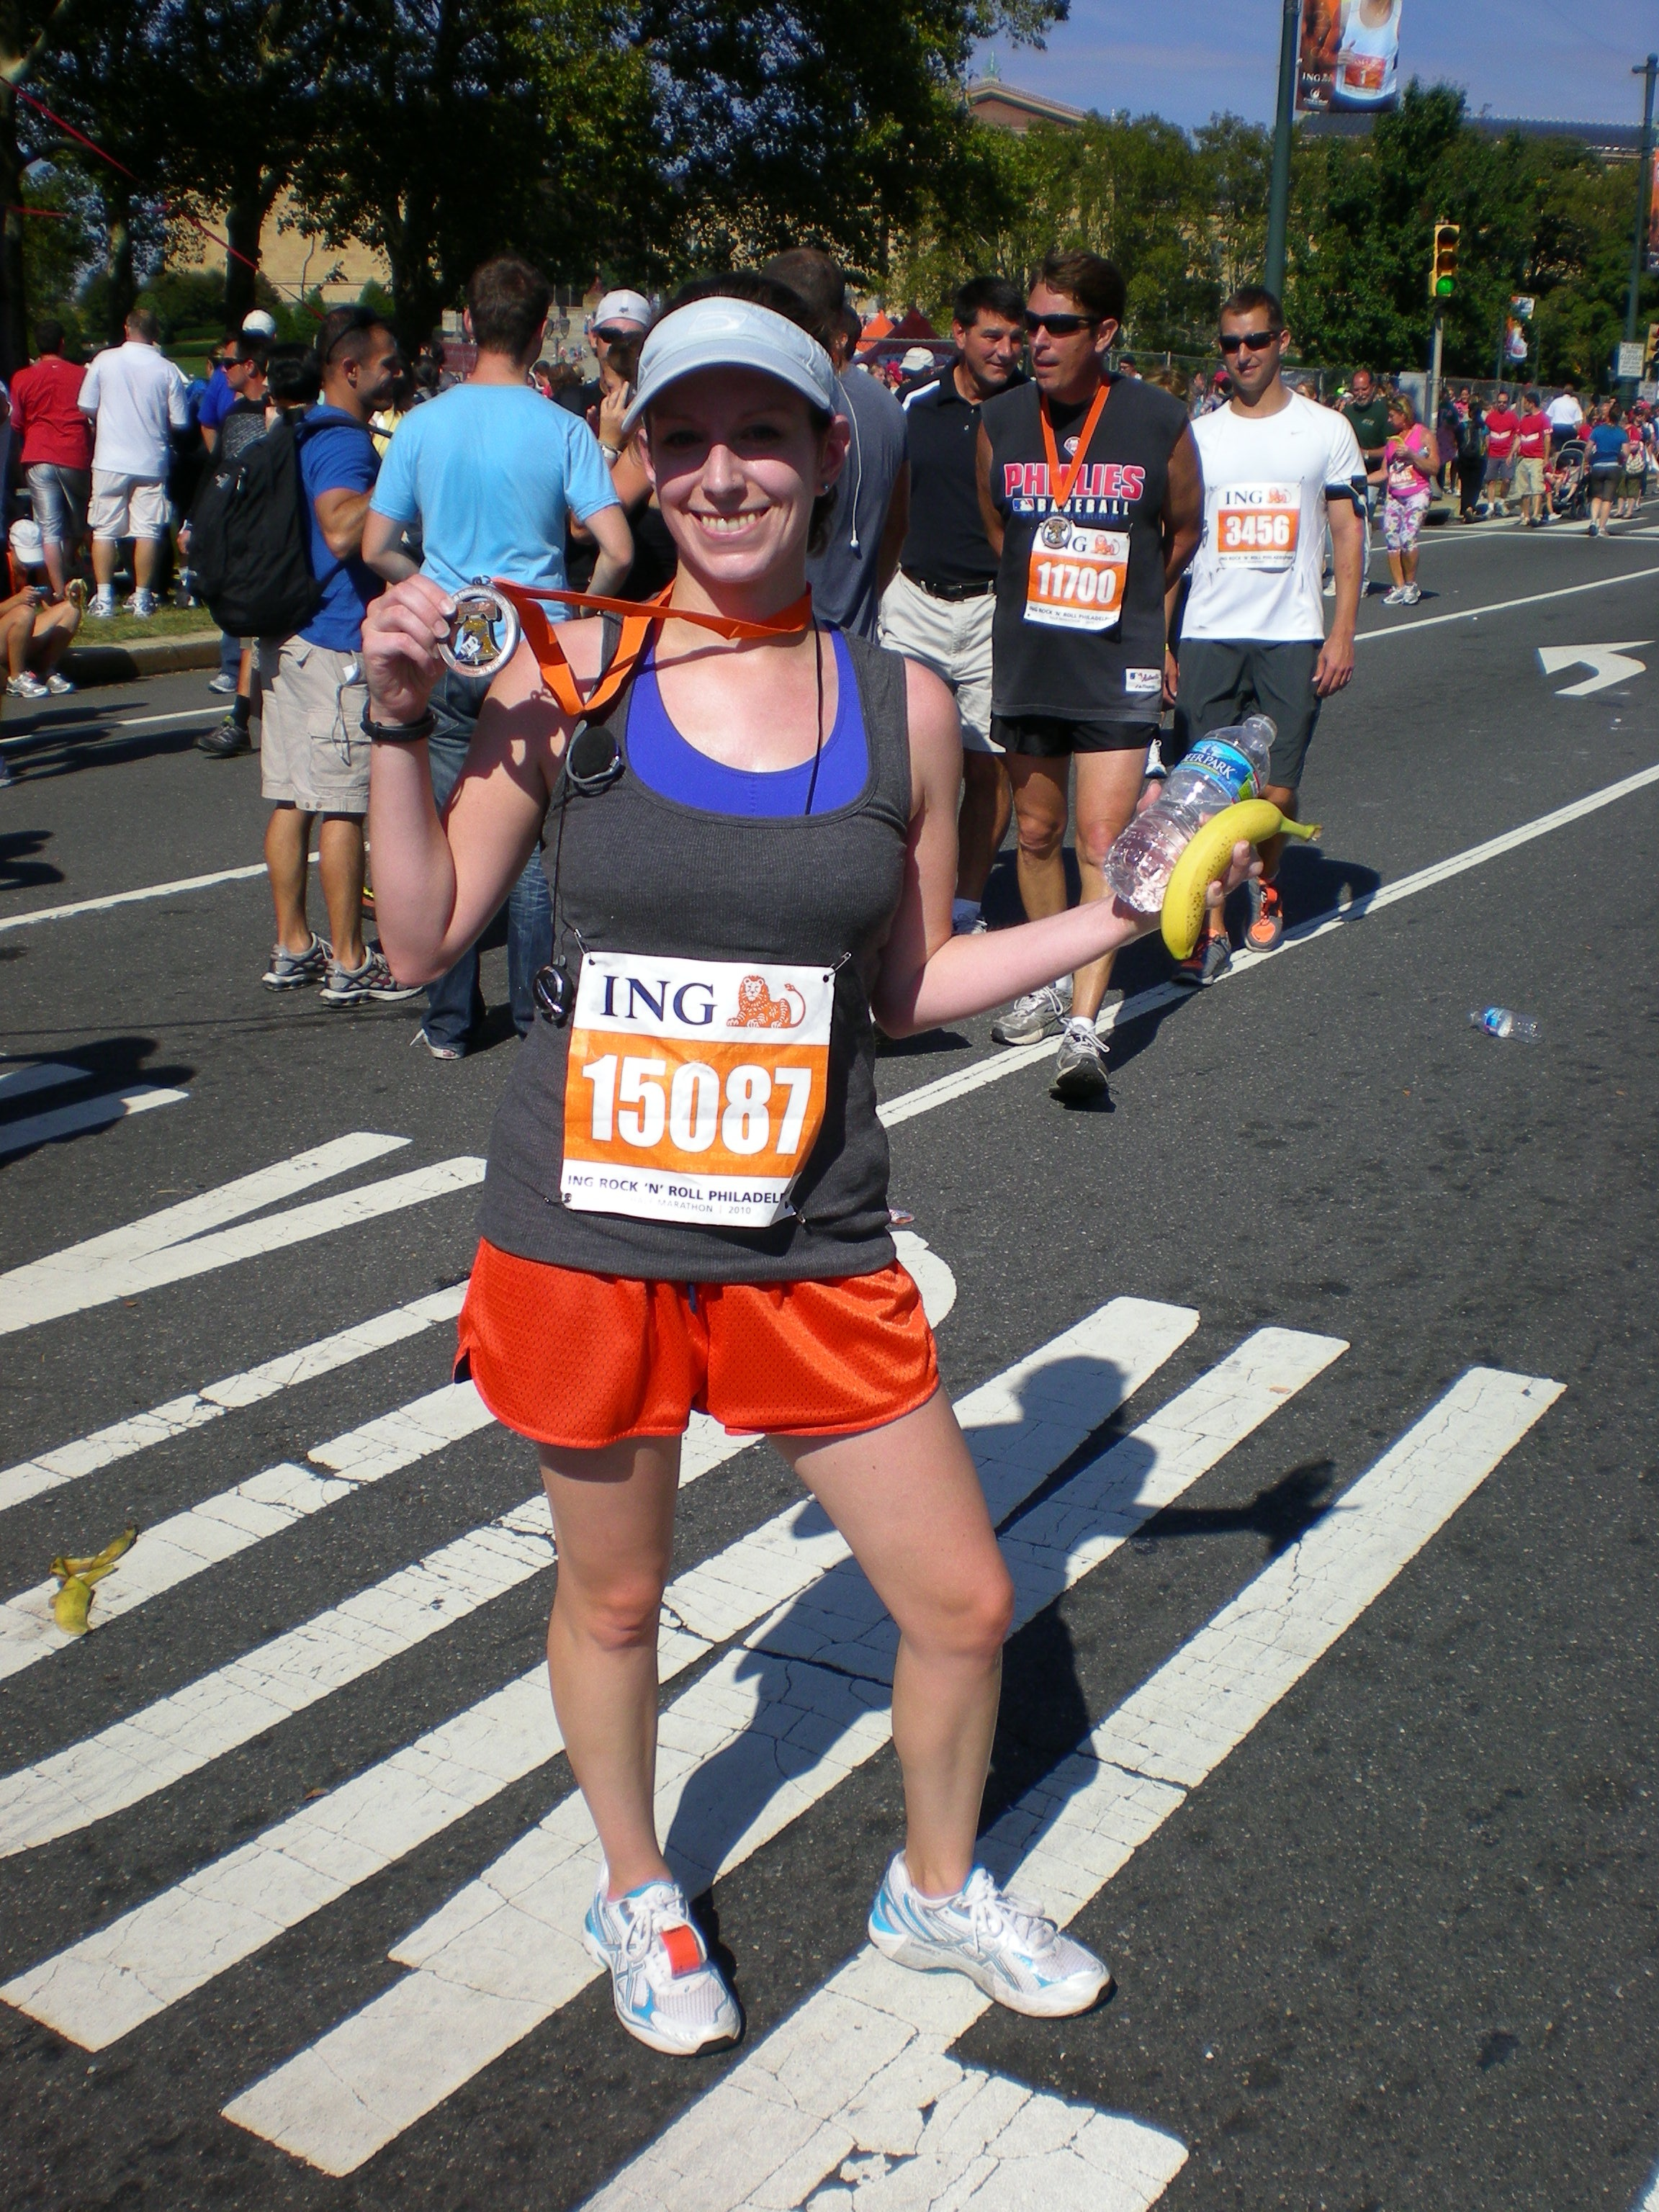 Shortly before peg leg-itis set in at my last half marathon.